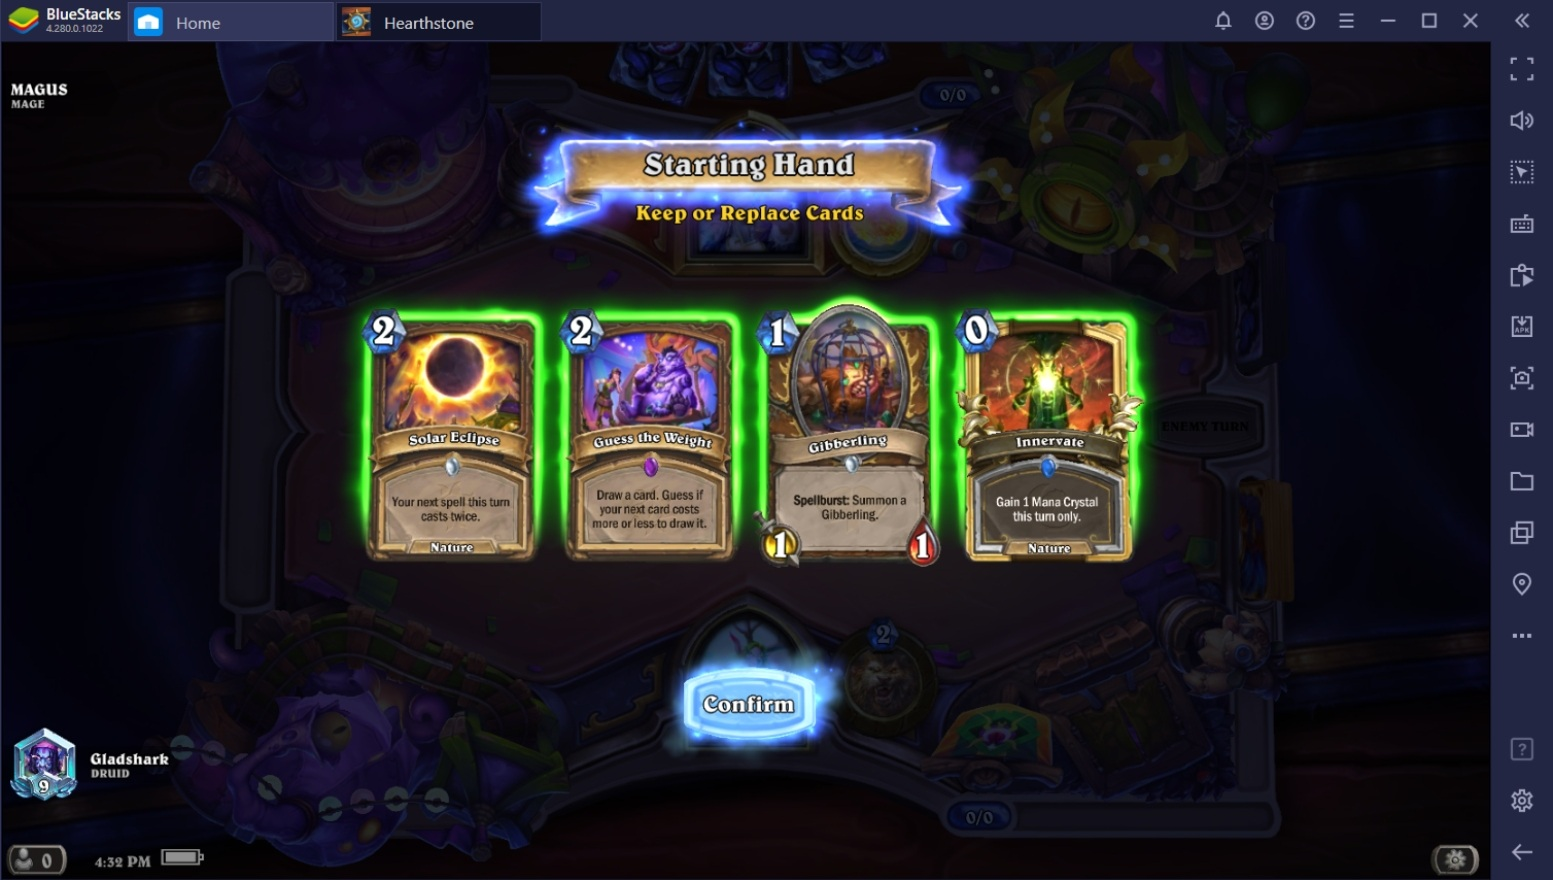 Hearthstone Tips and Tricks to Climb the Ranked Ladder